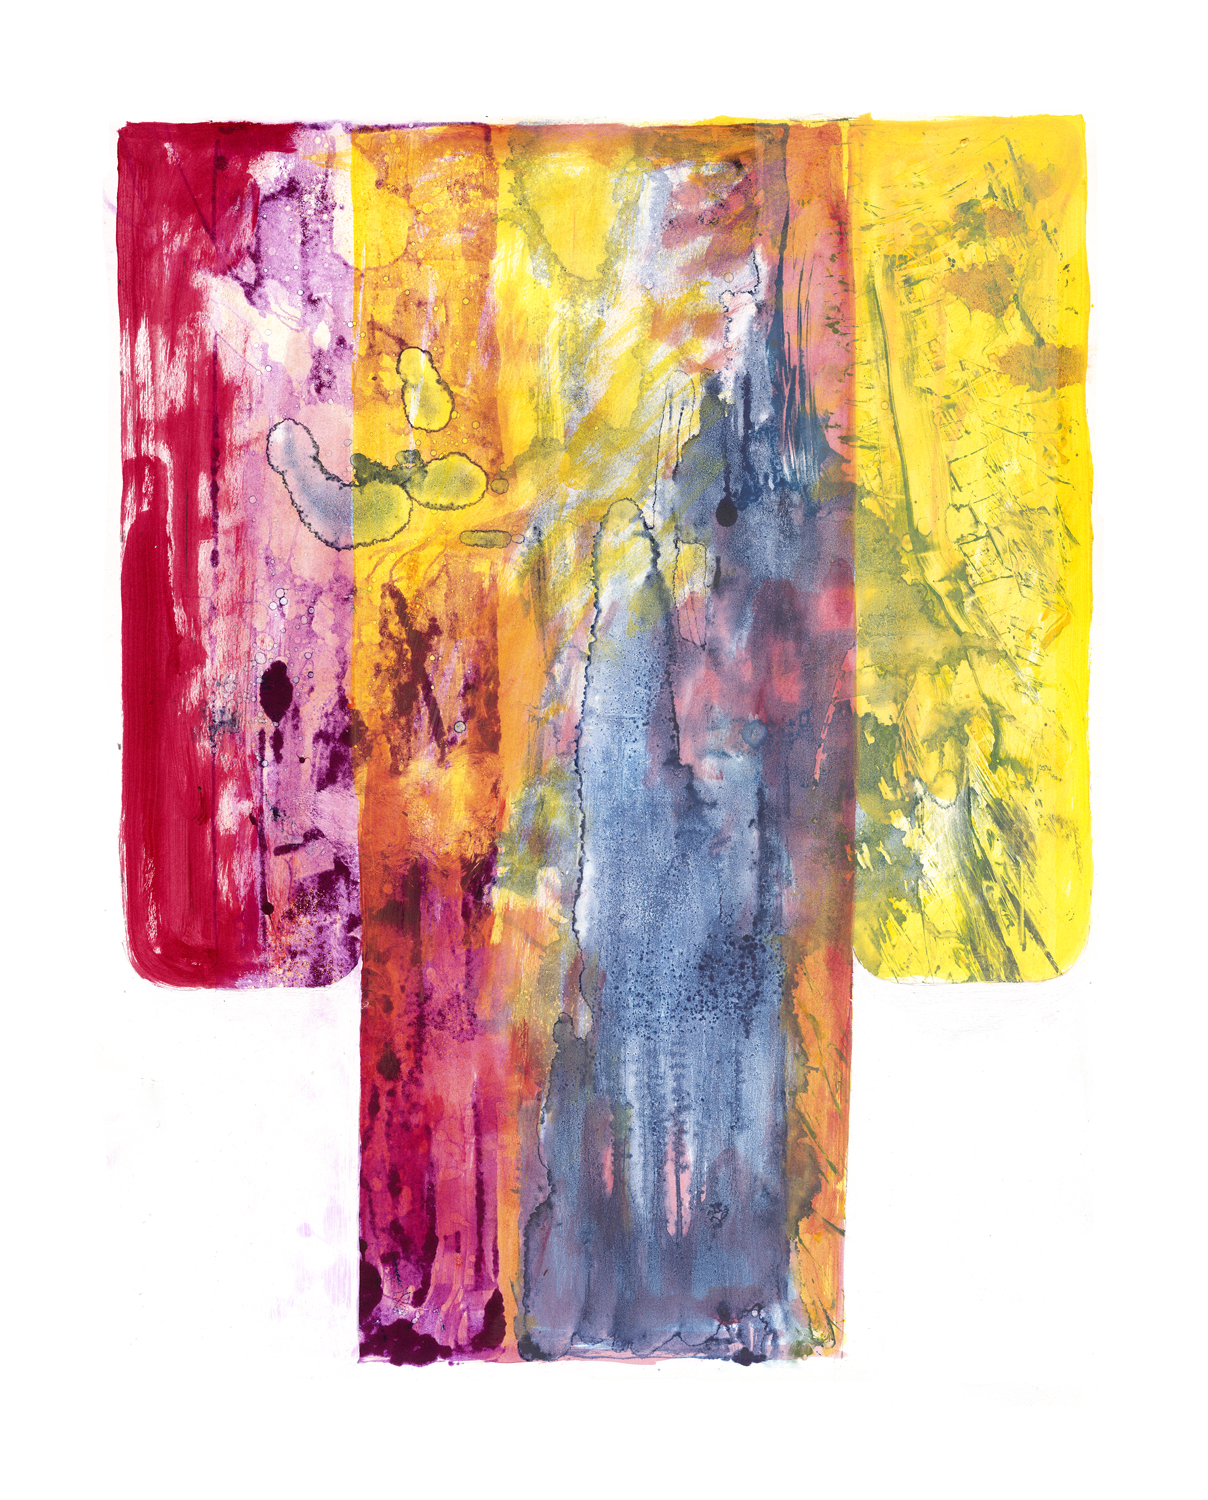 Formal Kimono , 2000-2002,Monotype with hand painted modifications by the artist, 32.5 x 25.5 in. (82 x 64 cm.)